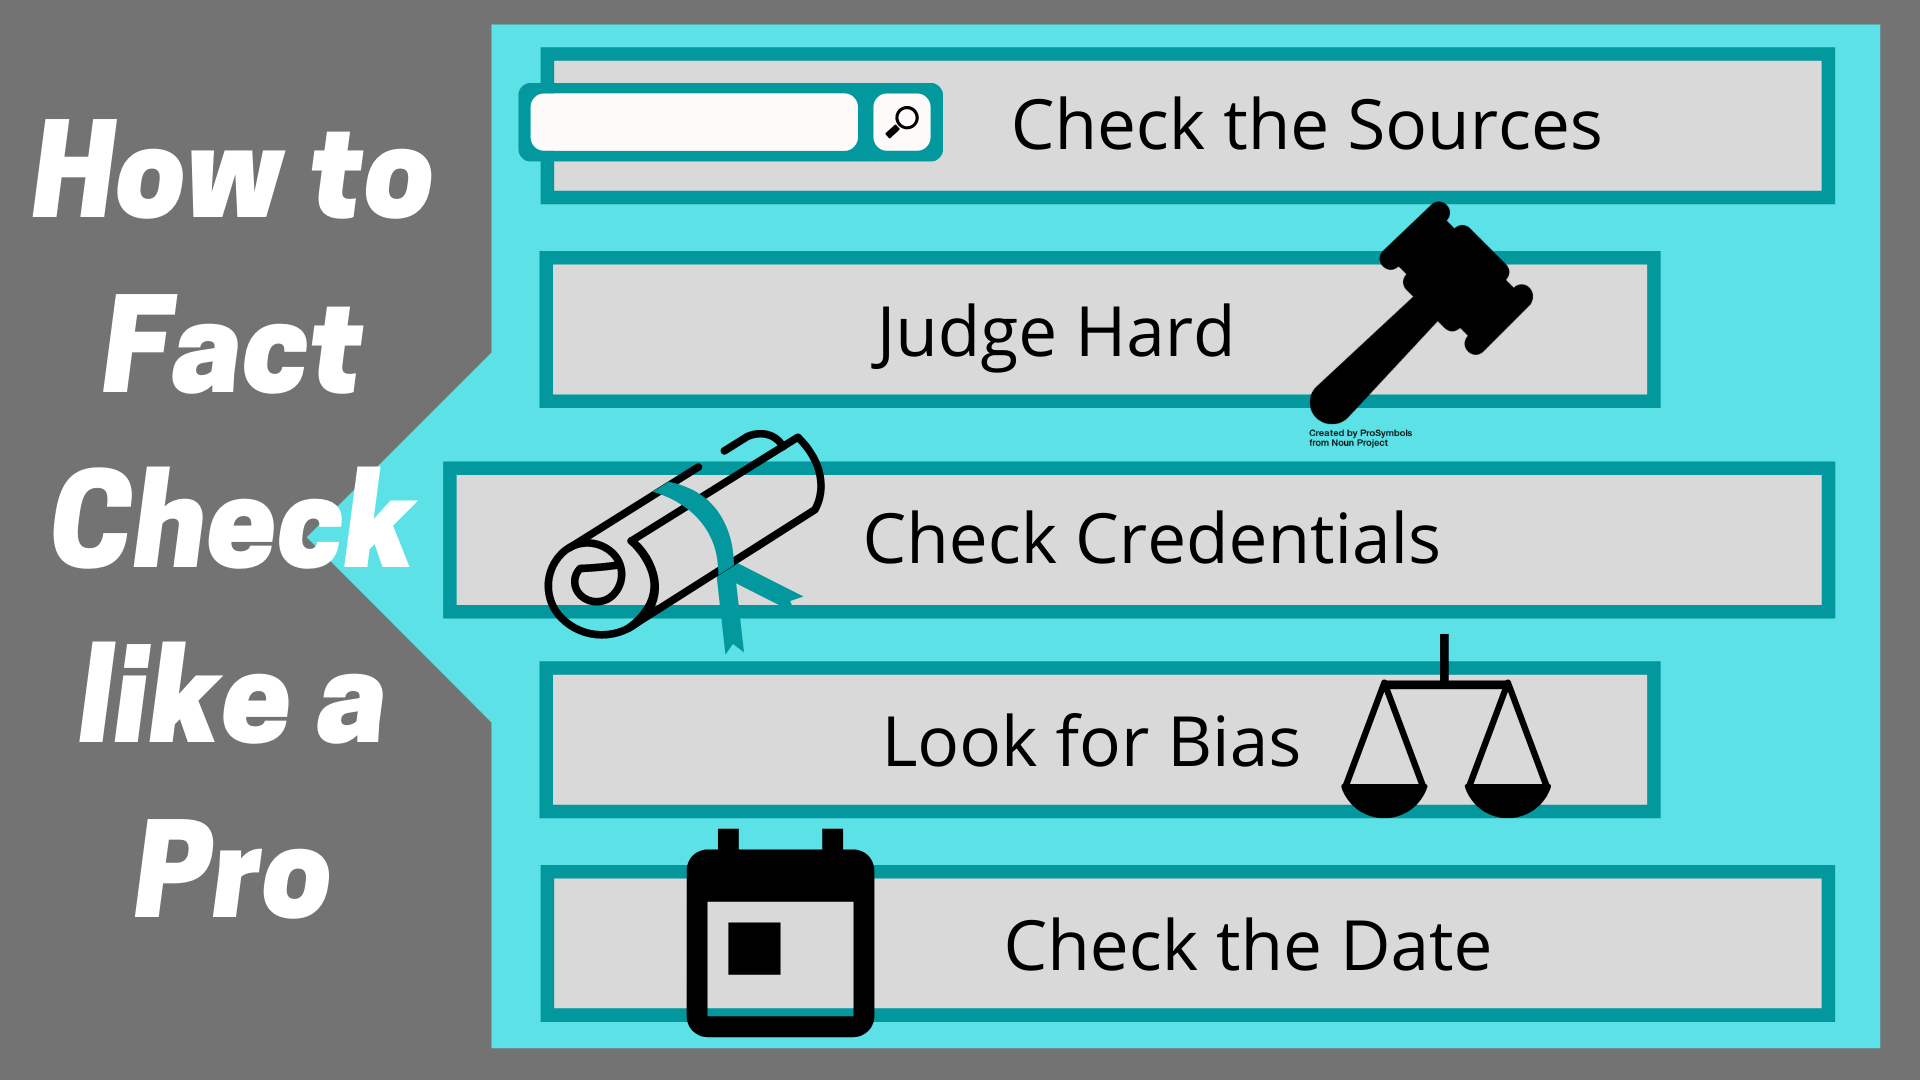 How to Fact Check Like a Pro; Check the sources, Judge Hard, Check credentials, Look for Bias, Check the date.